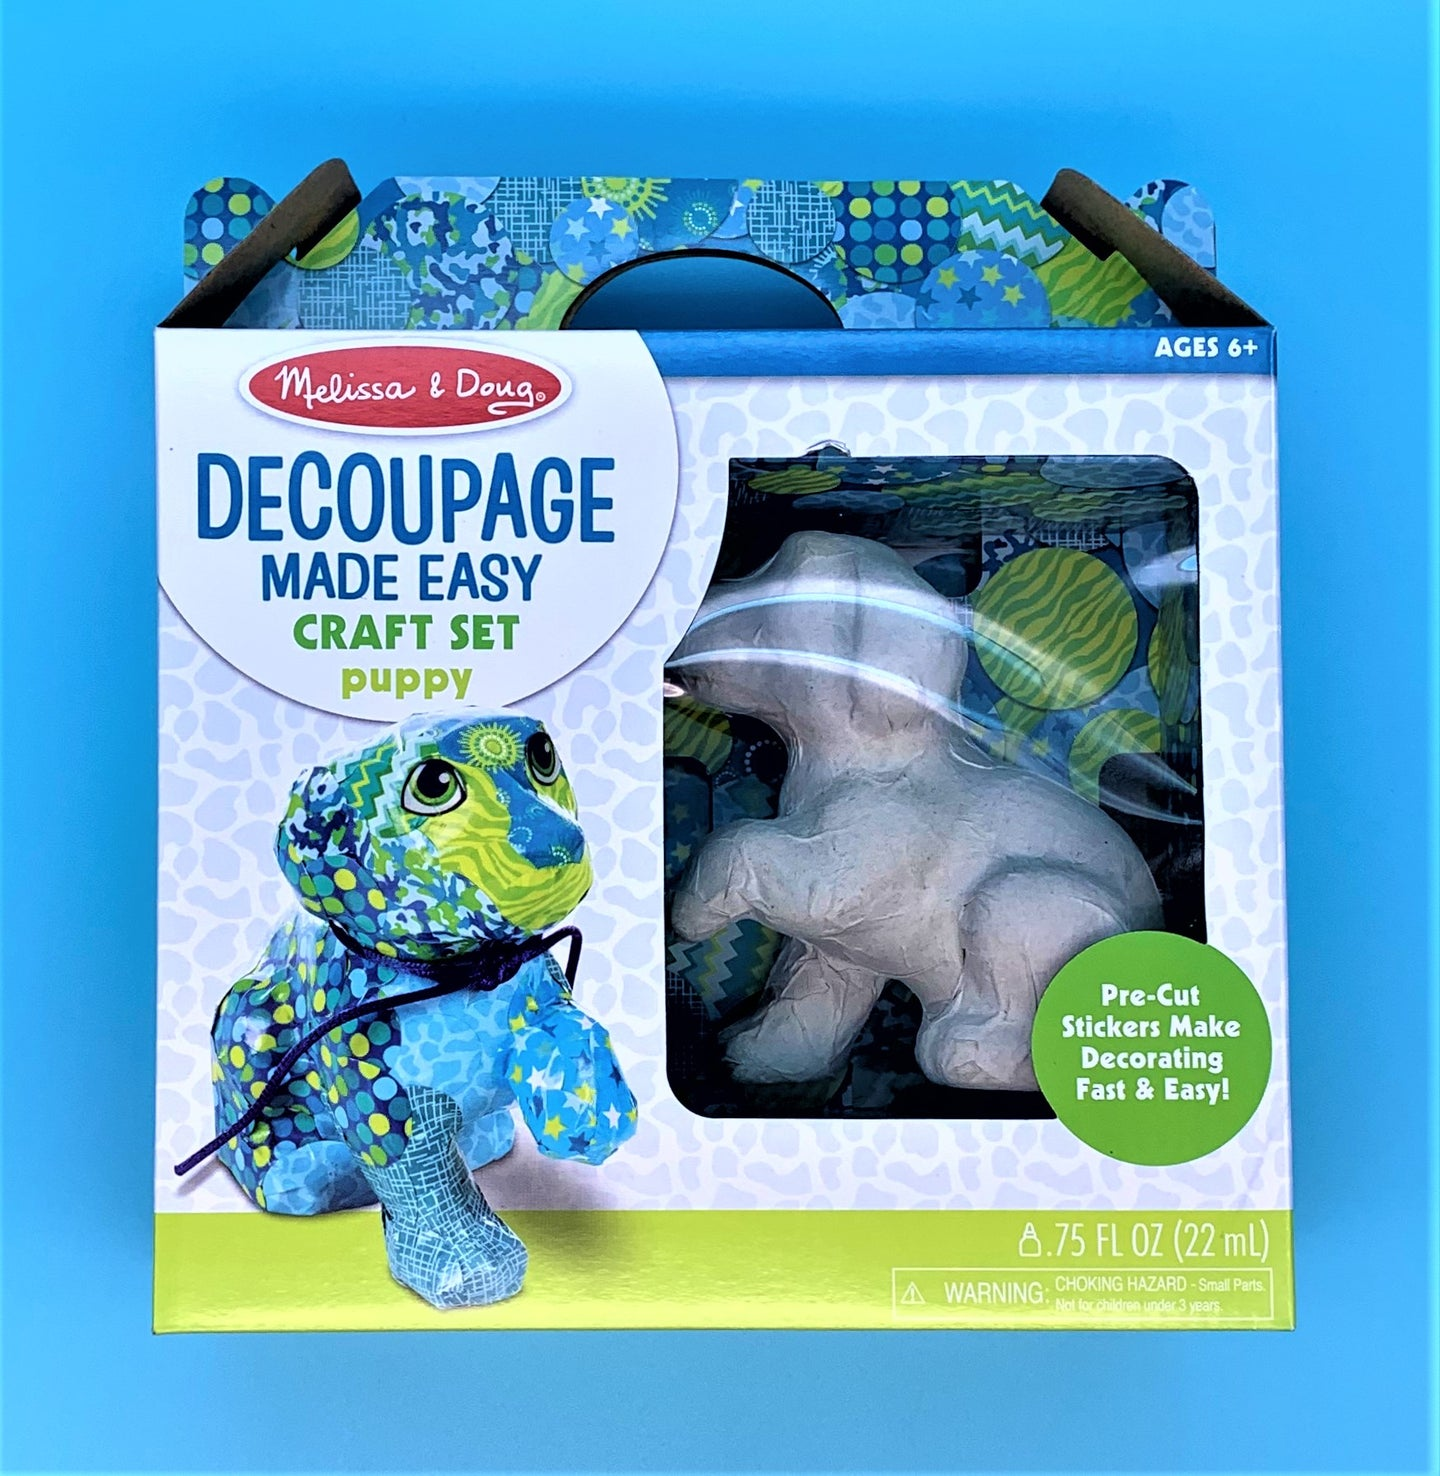 Decoupage Craft Puppy